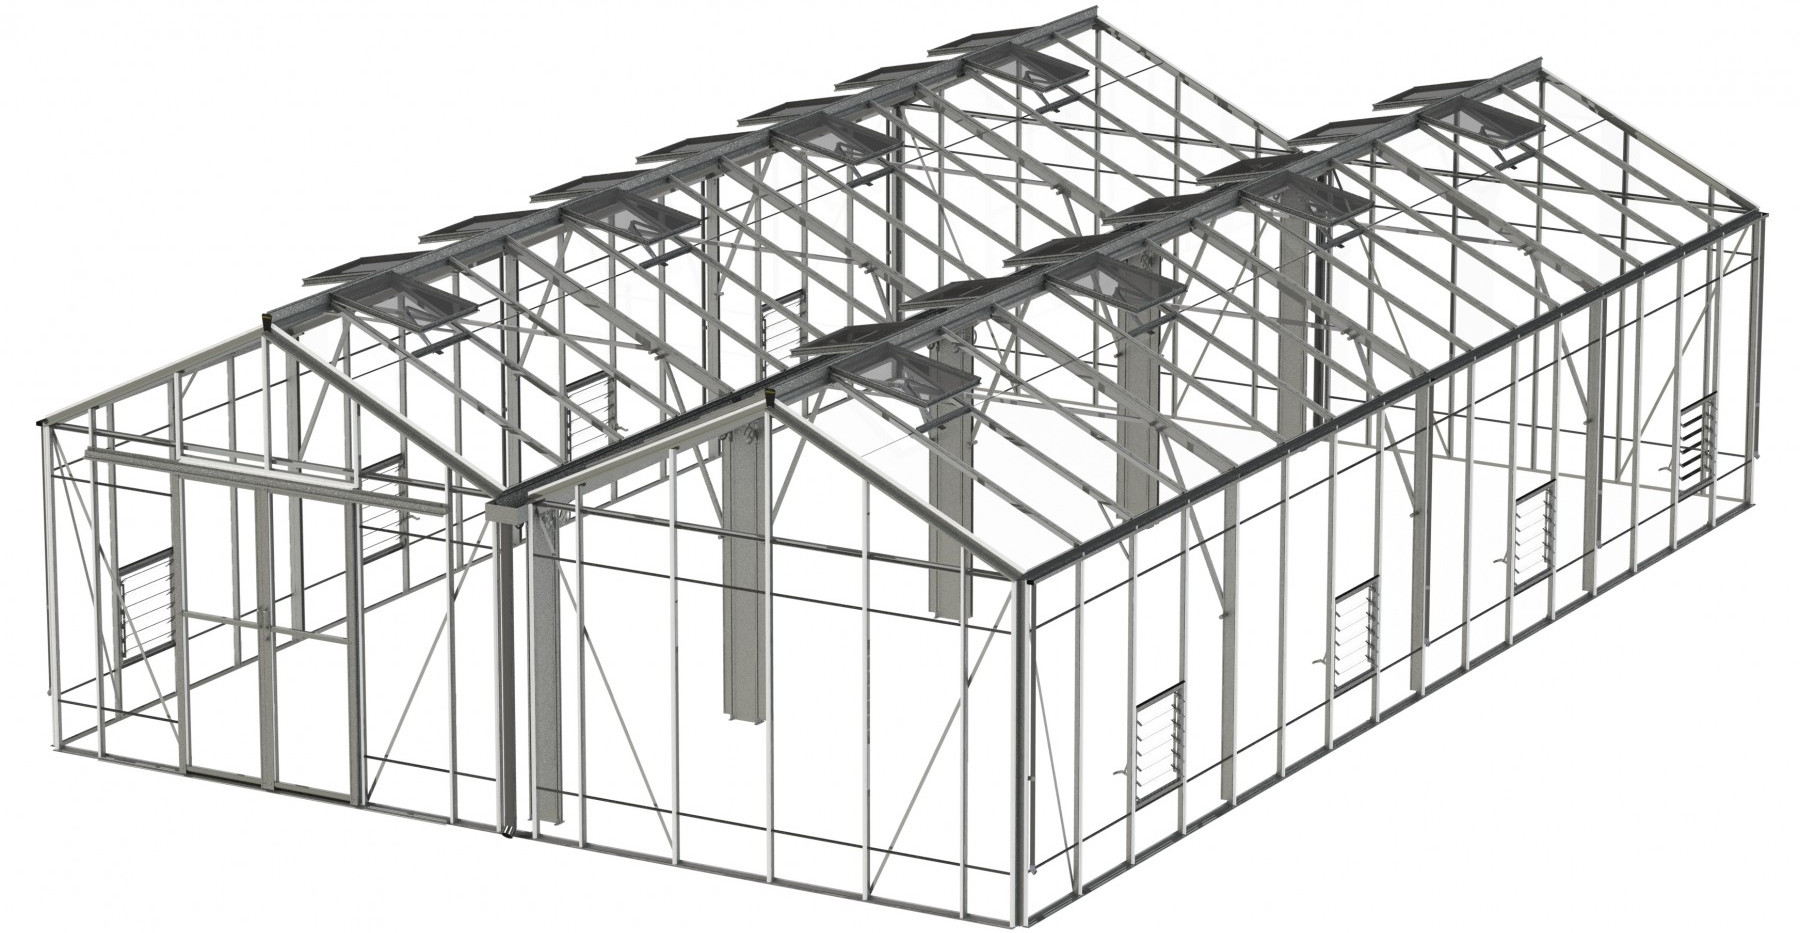 Robinsons Rosette Reach Double Span 21'9 wide Aluminium Greenhouse